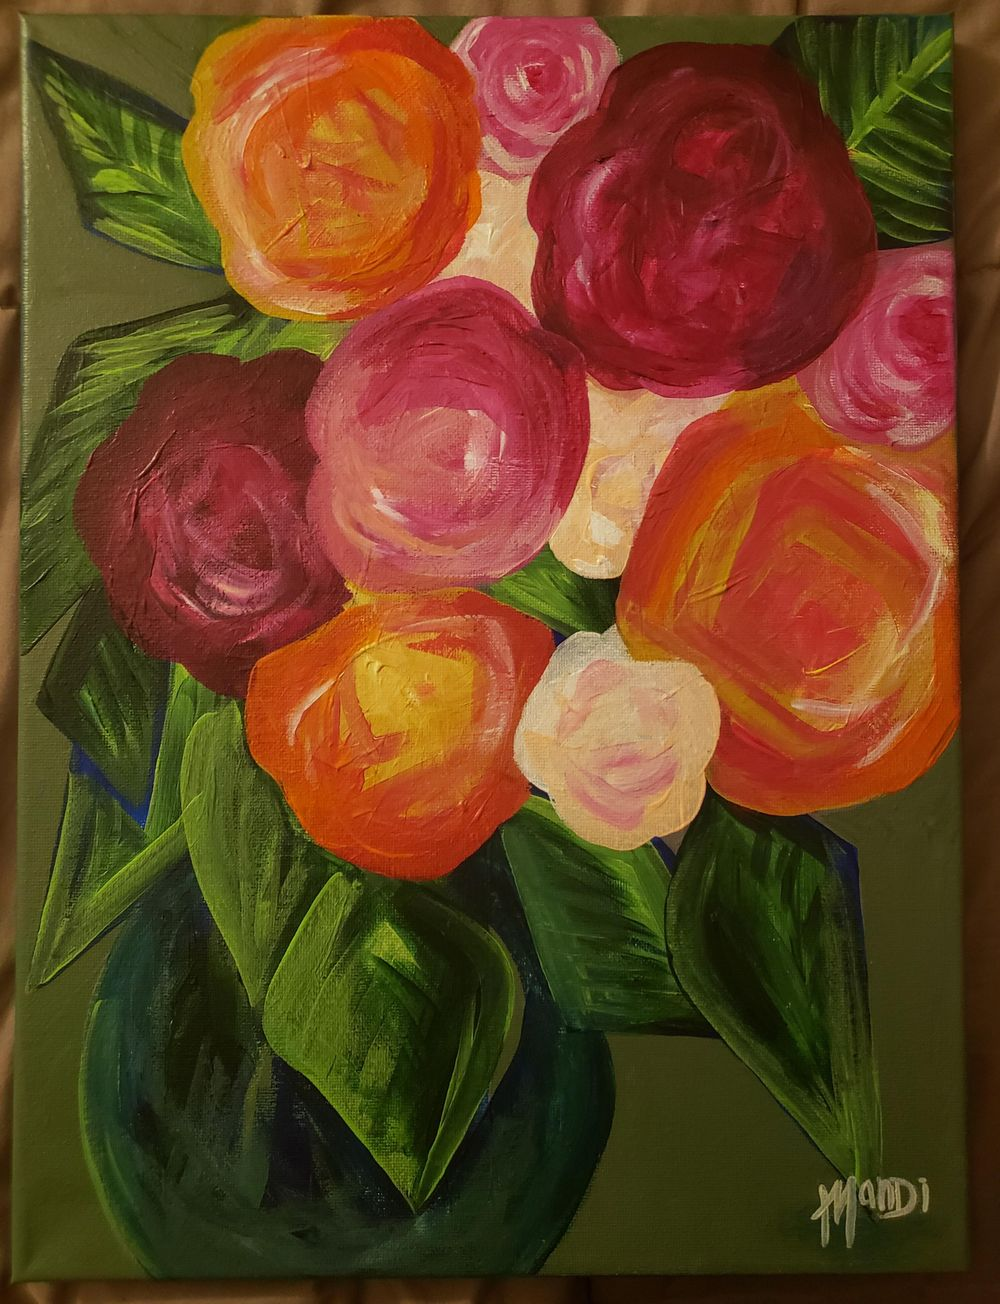 Abstract flower arrangement - image 1 - student project